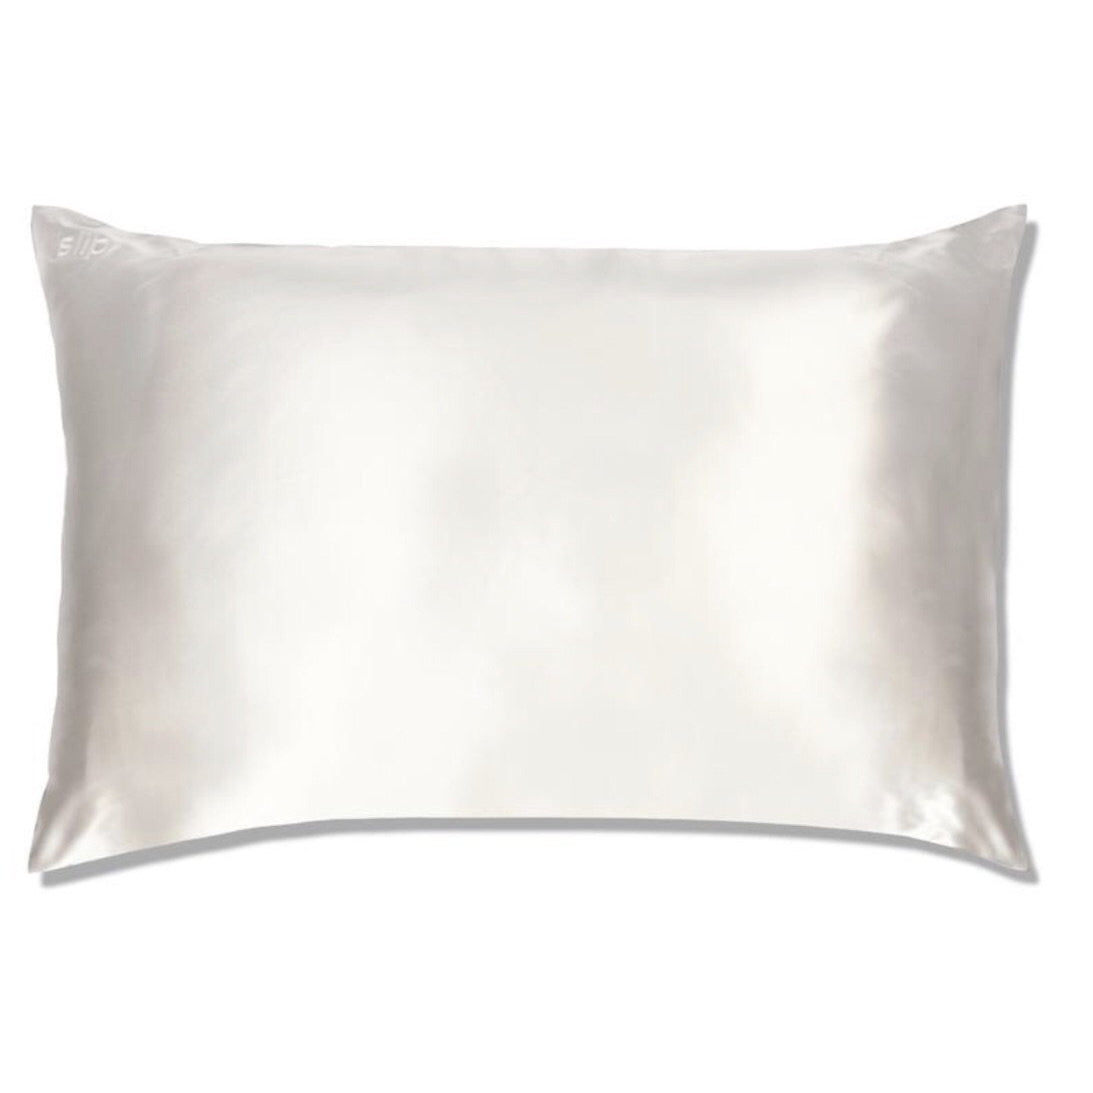 SLIP PILLOWCASE - WHITE - QUEEN